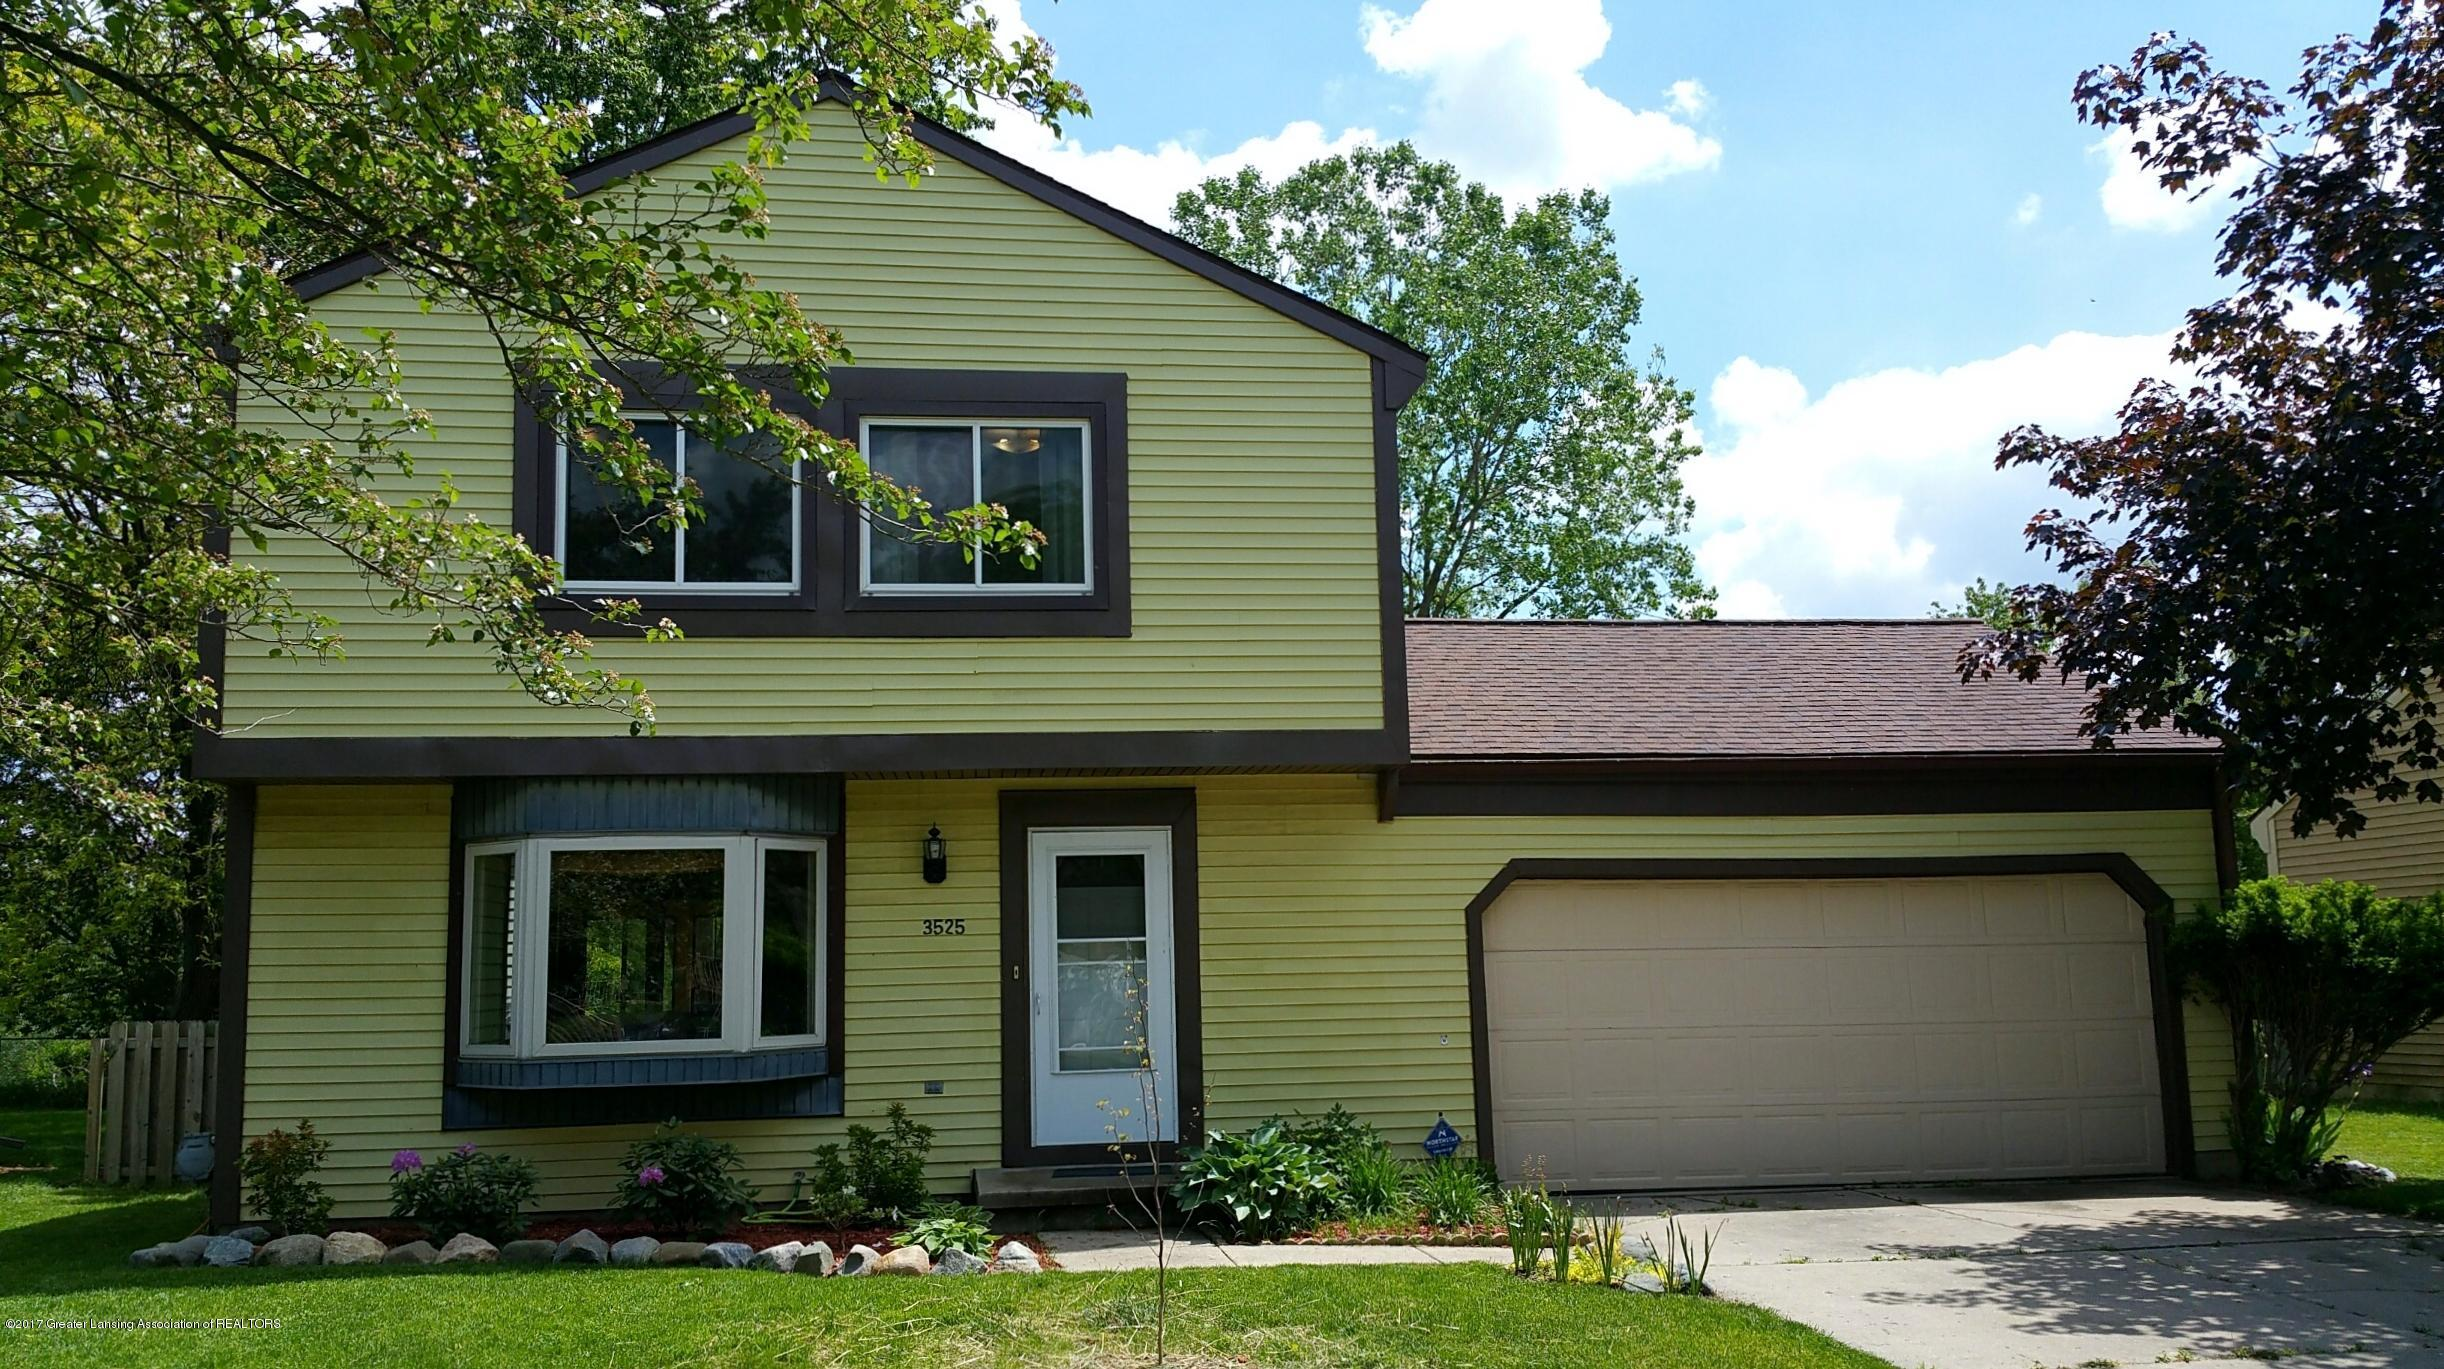 3525 Stoneleigh Dr - FRONT - 1